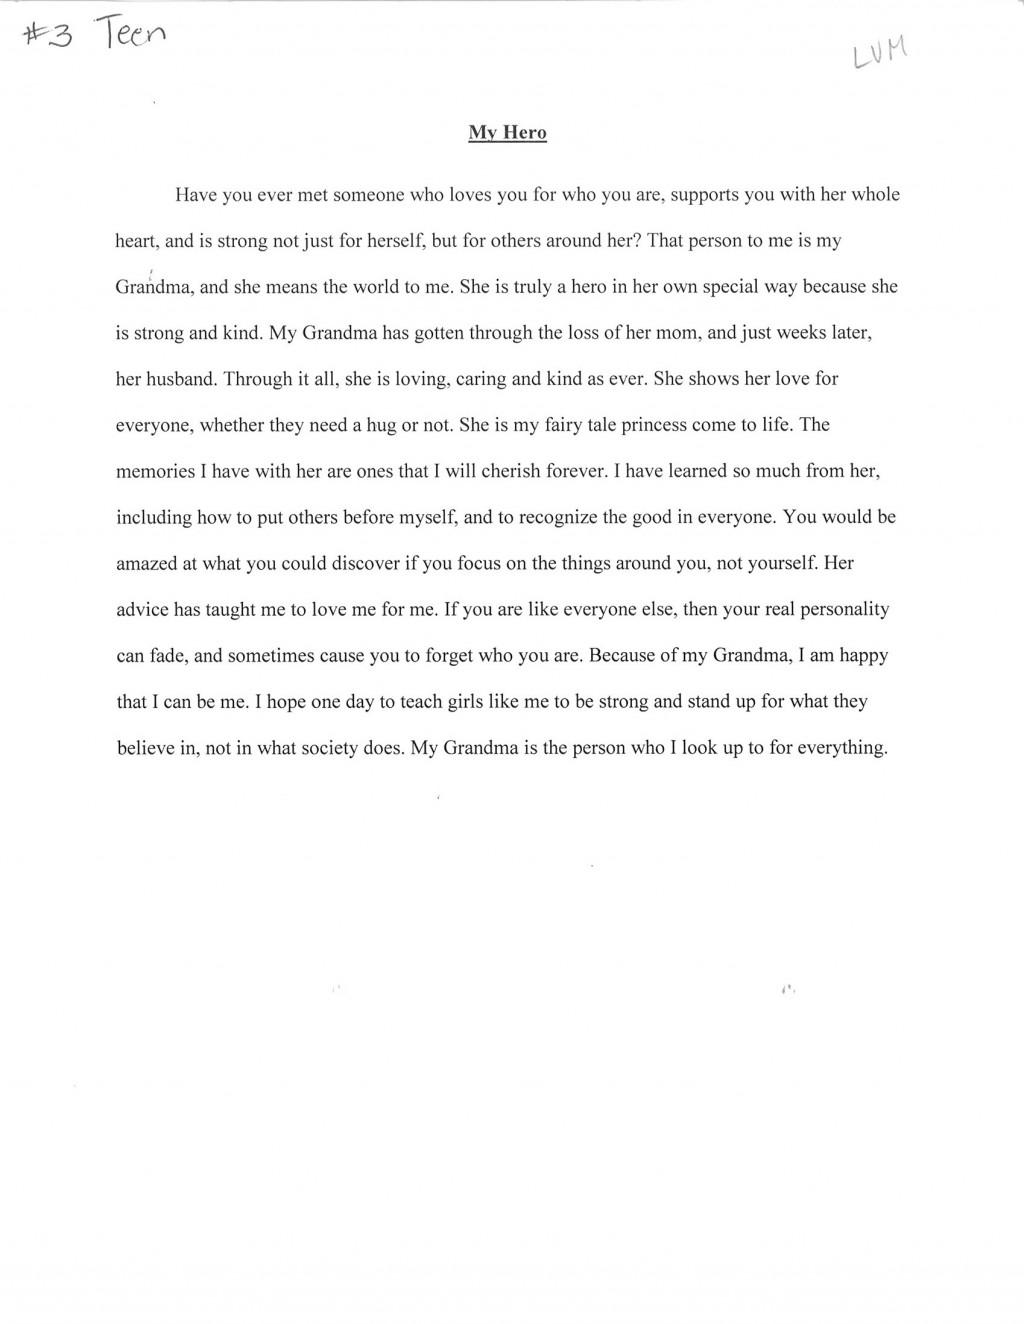 004 Essay Example My Hero Third20place20teen20sarah20horst20 Wondrous In History With Outline Favourite Salman Khan English National Large